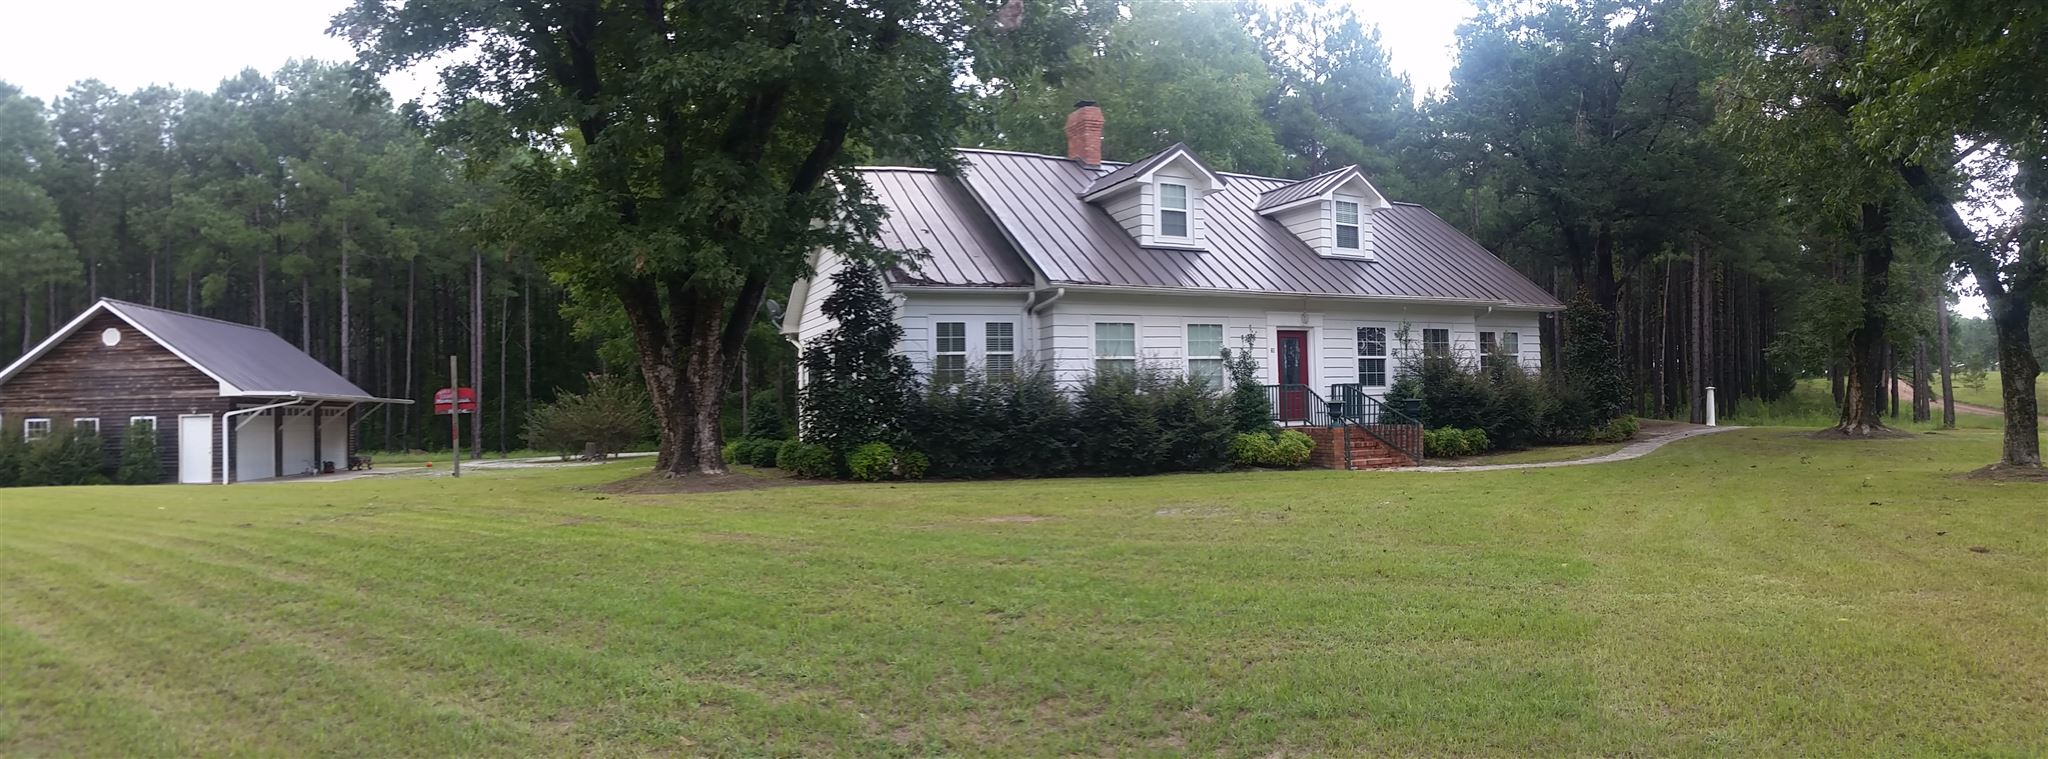 61 Perry Burch Road, Chester, GA 31012